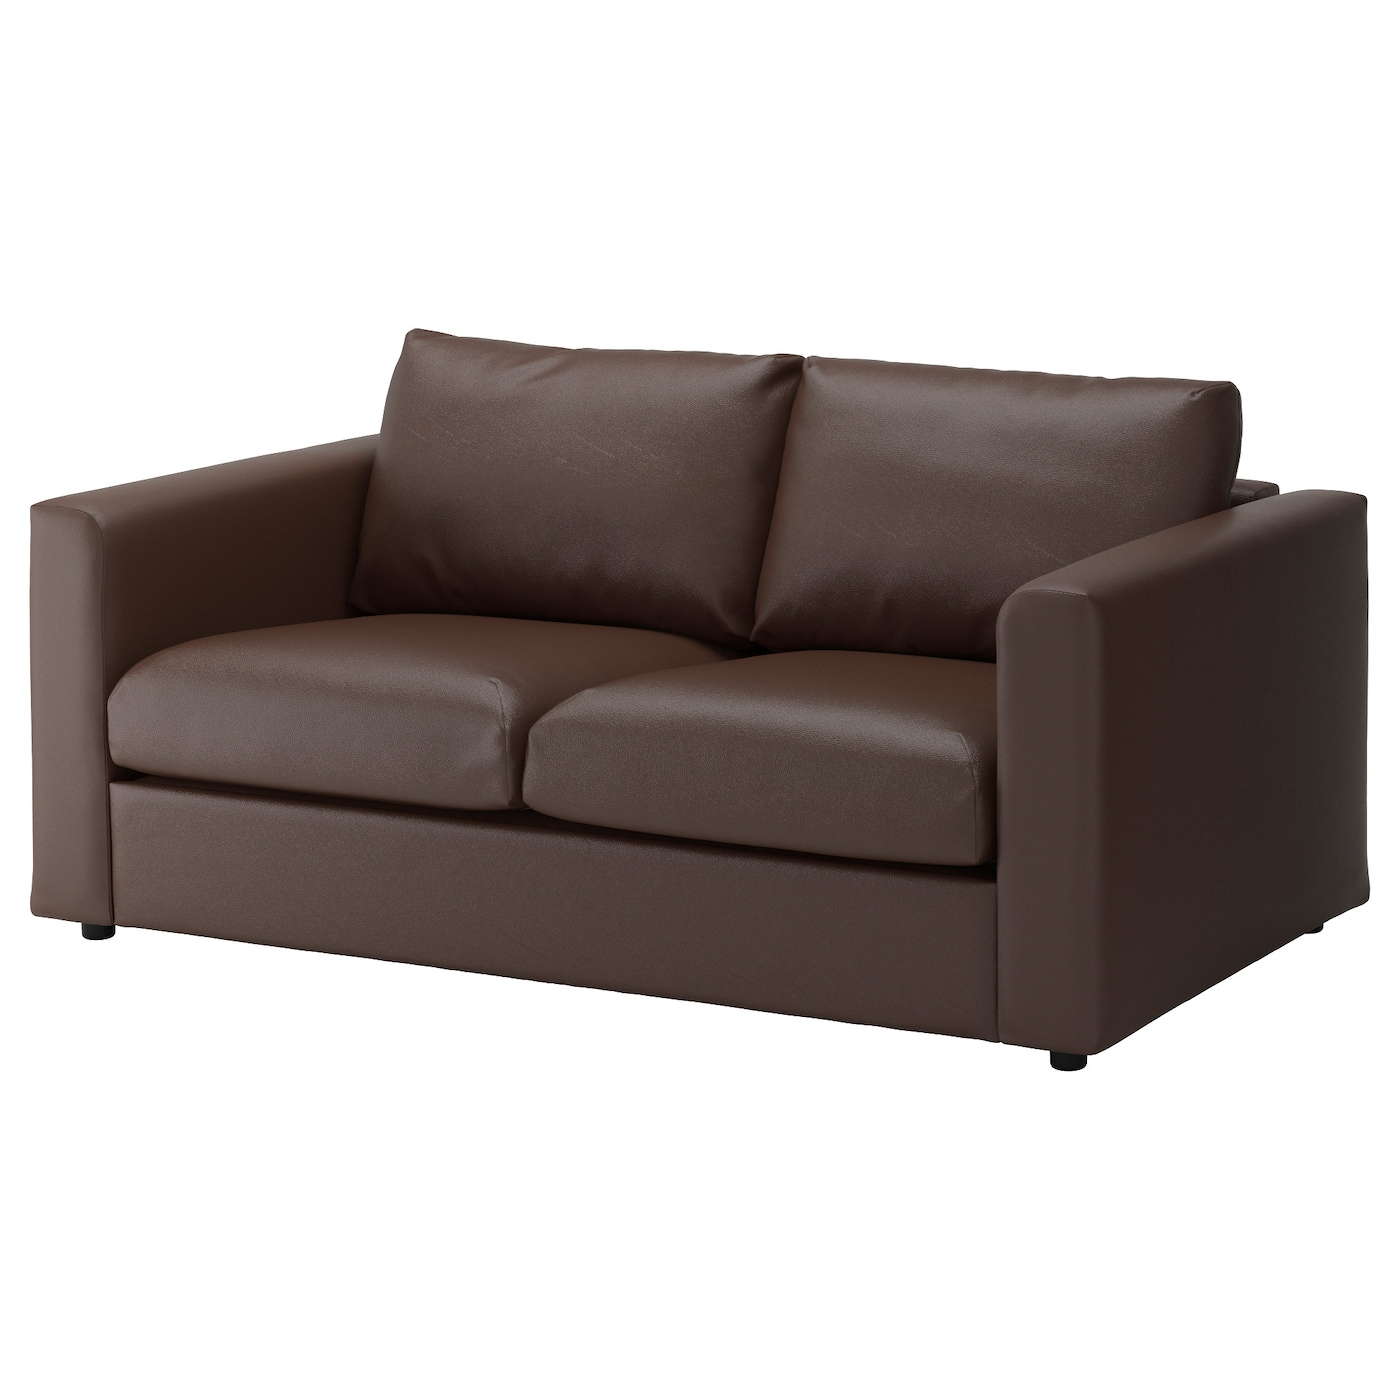 Vimle 2 seat sofa farsta dark brown ikea for Brown fabric couch